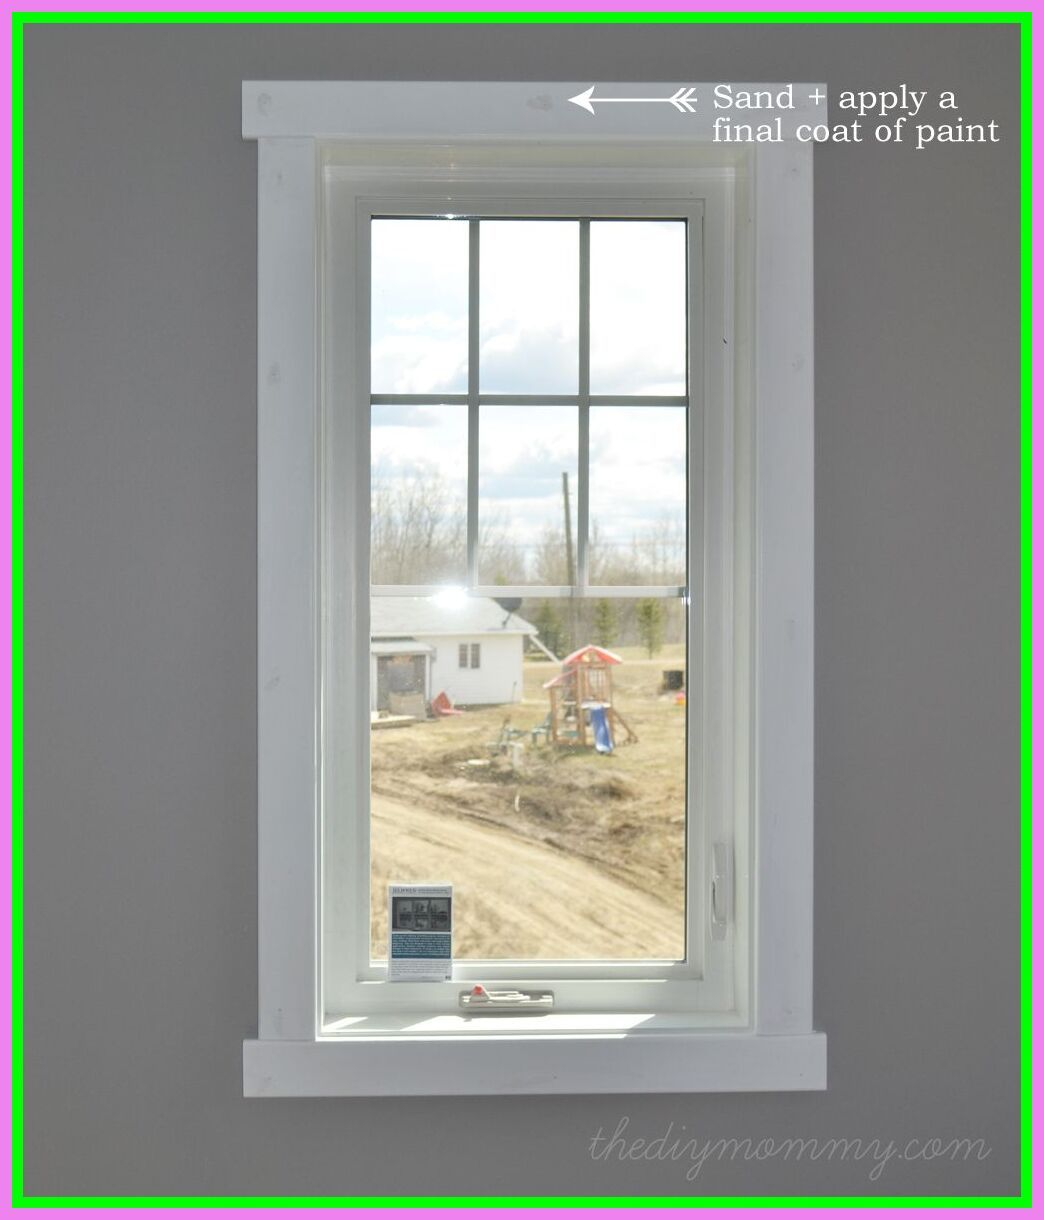 126 Reference Of Door Trim Shaker Style In 2020 Craftsman Window Trim Craftsman Door Craftsman Style Doors